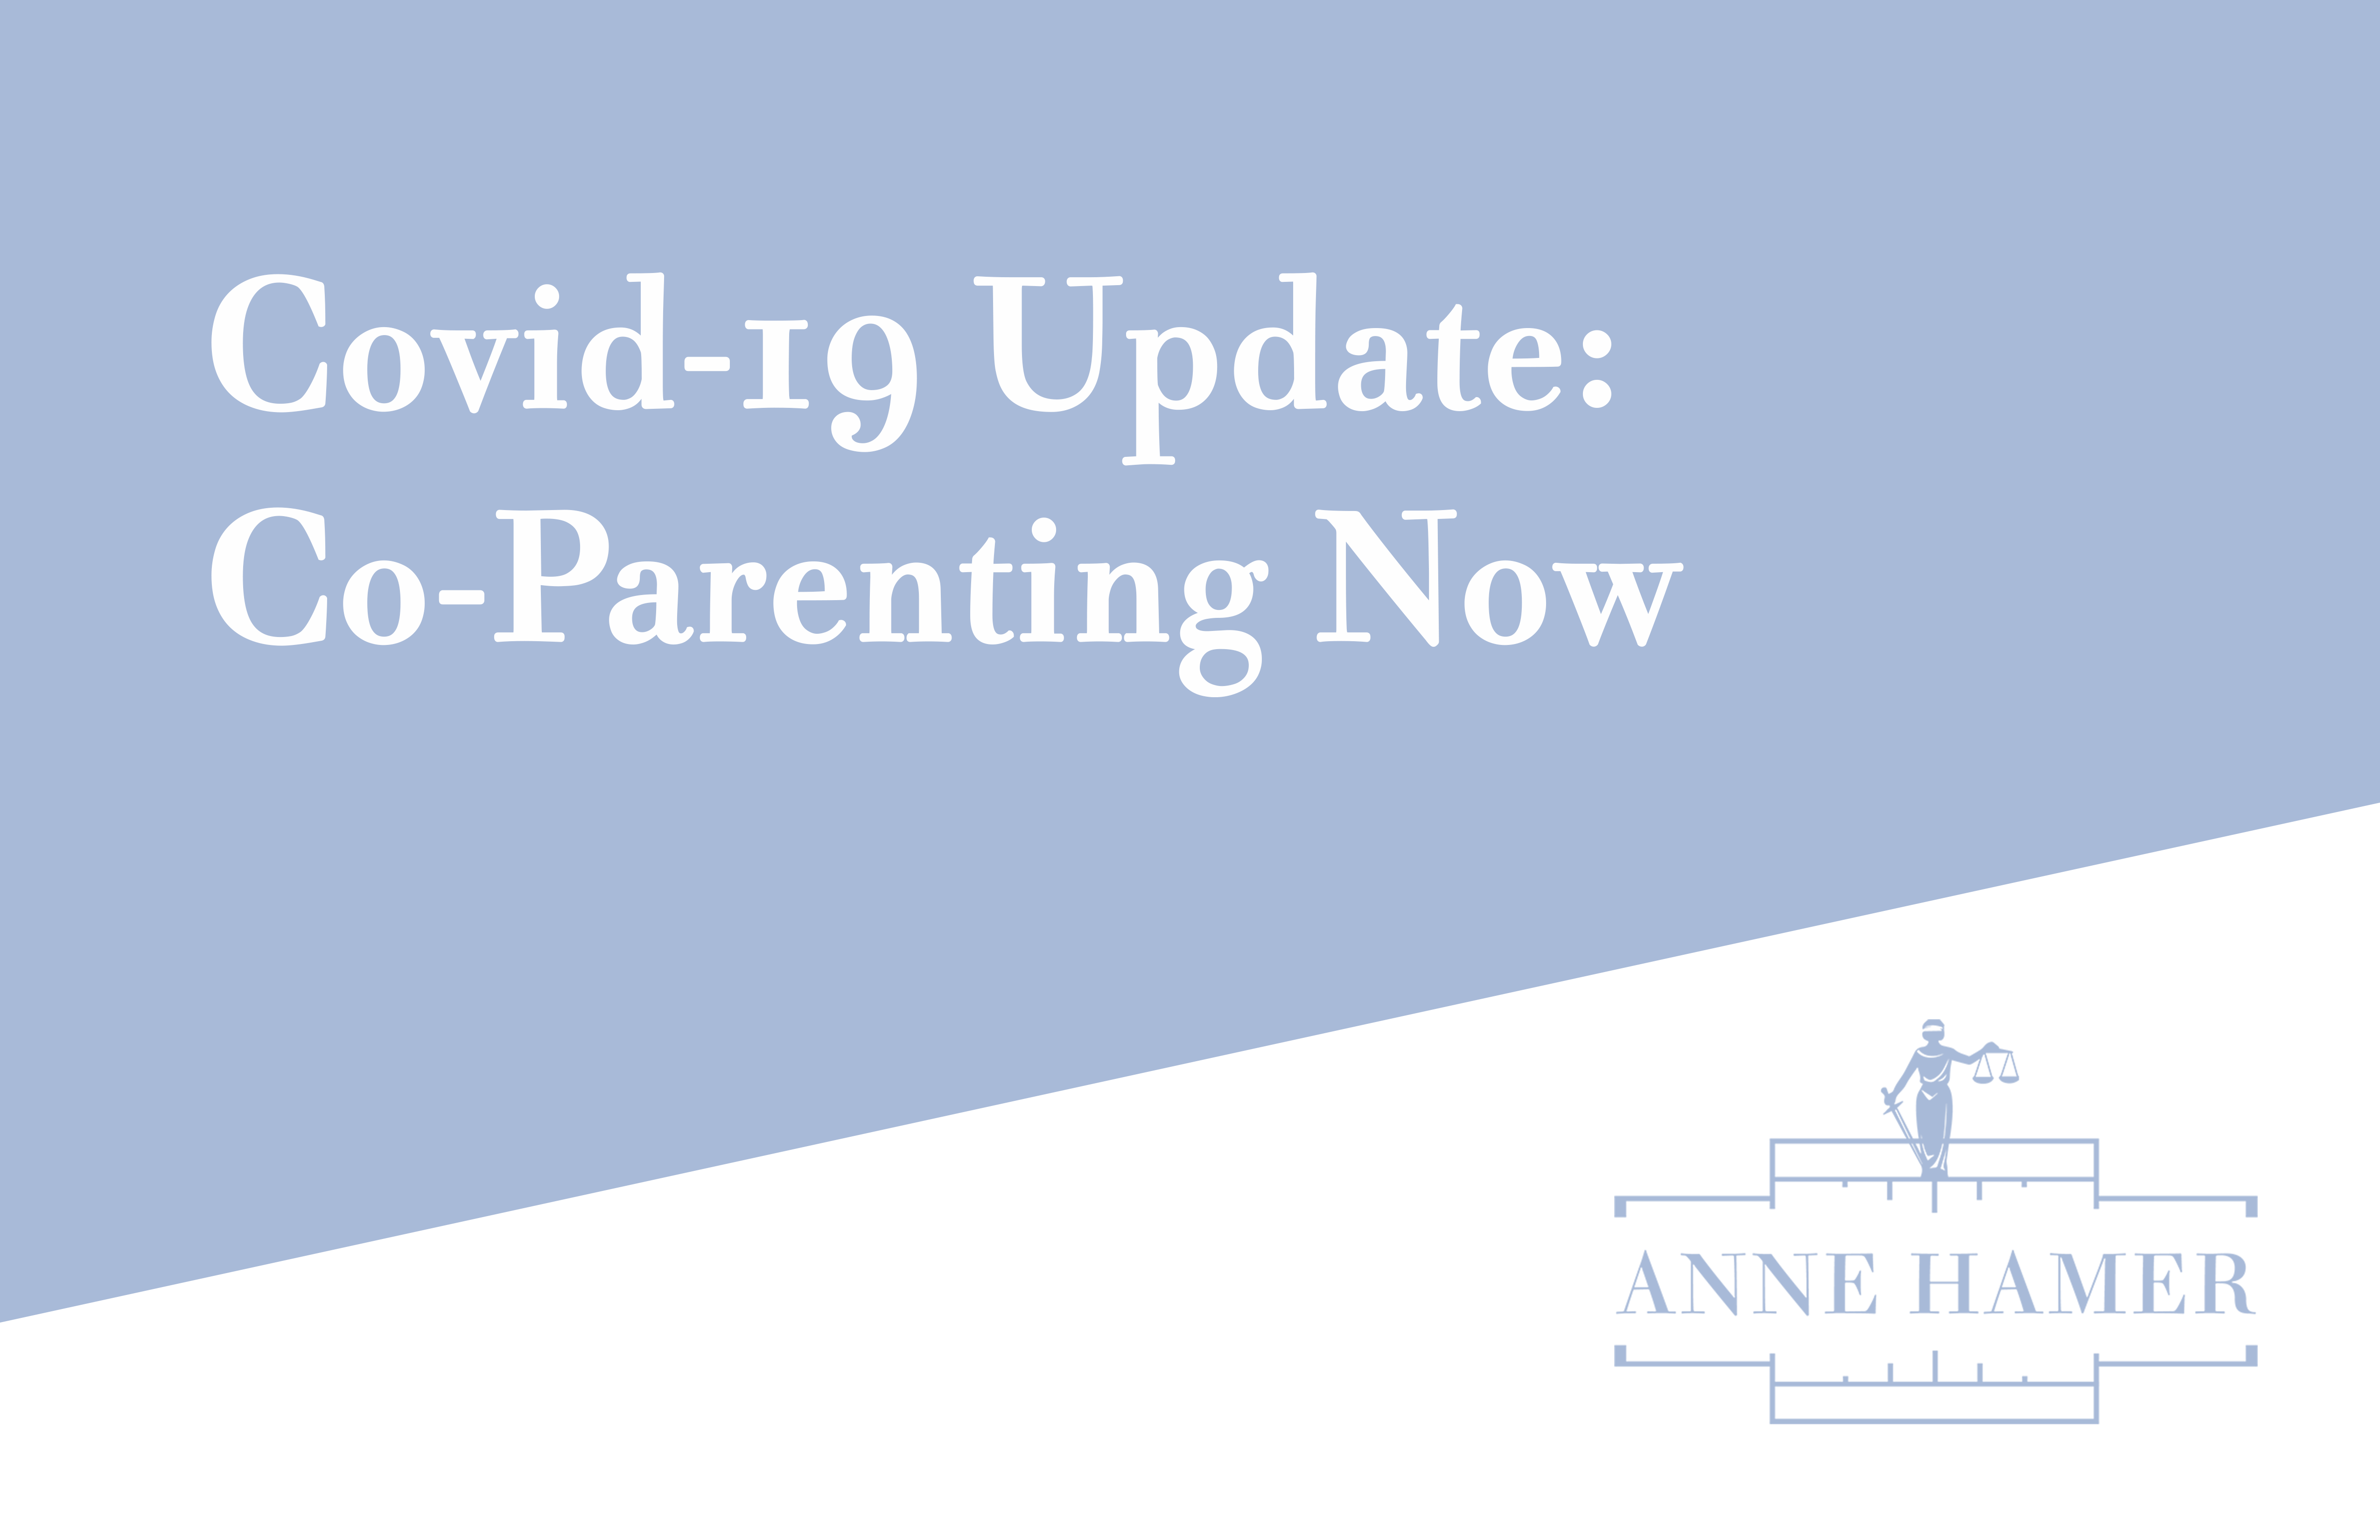 Covid-19 Update: Co-Parenting Now